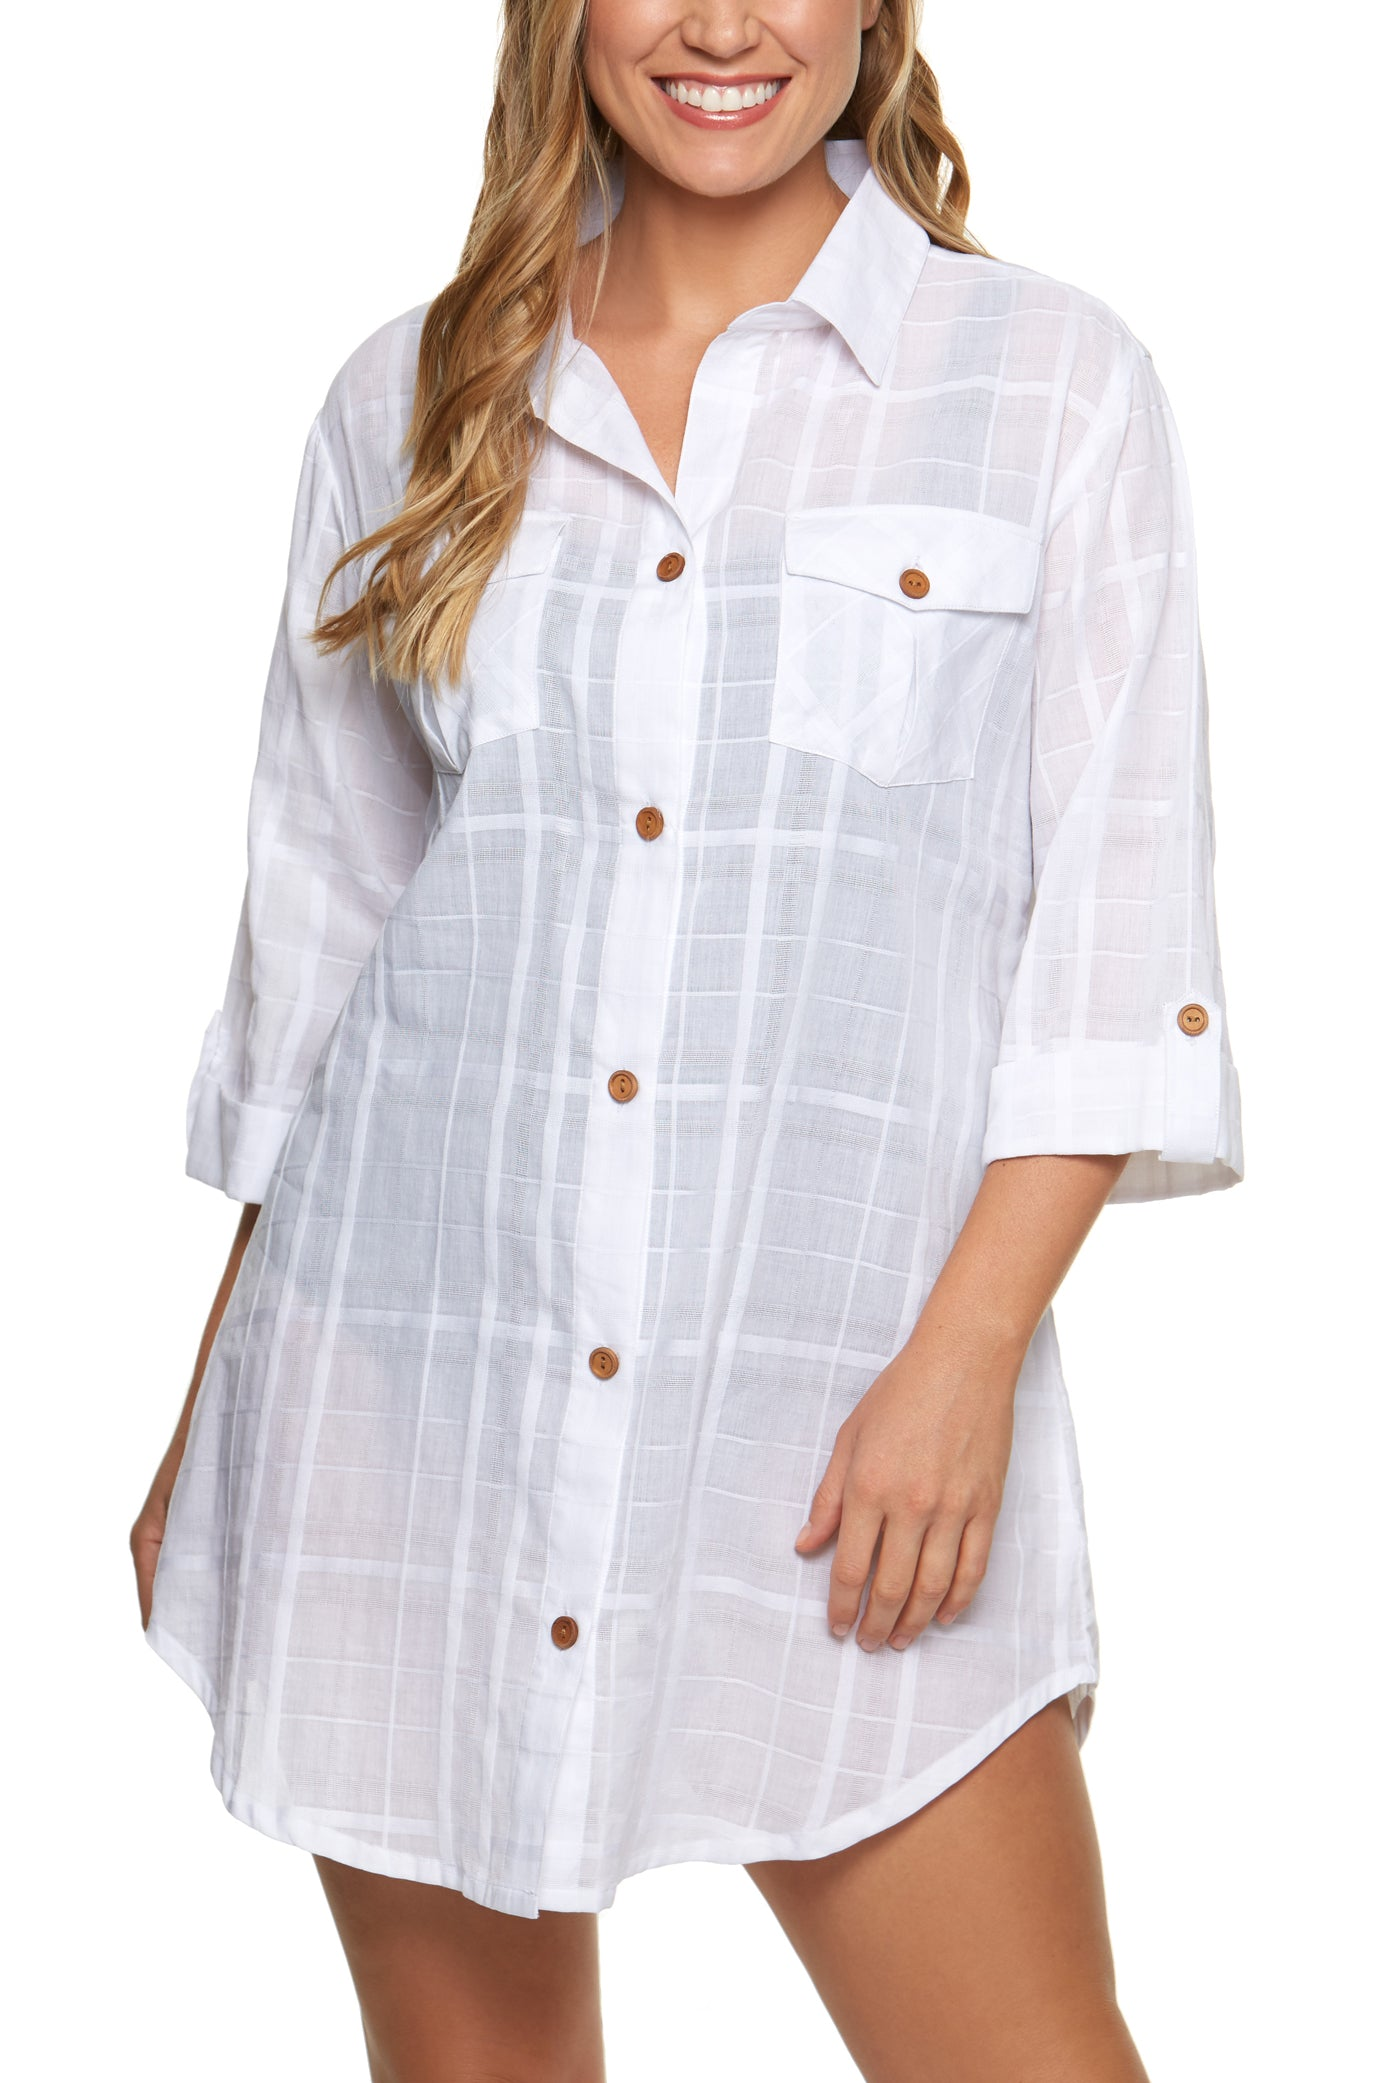 Knee length Button-front closures; point collar Double button flap patch pockets; Tiger's eye buttons; shirttail hem 3/4-sleeves with buttoned cuffs Rayon Machine washable Product Number: 11132